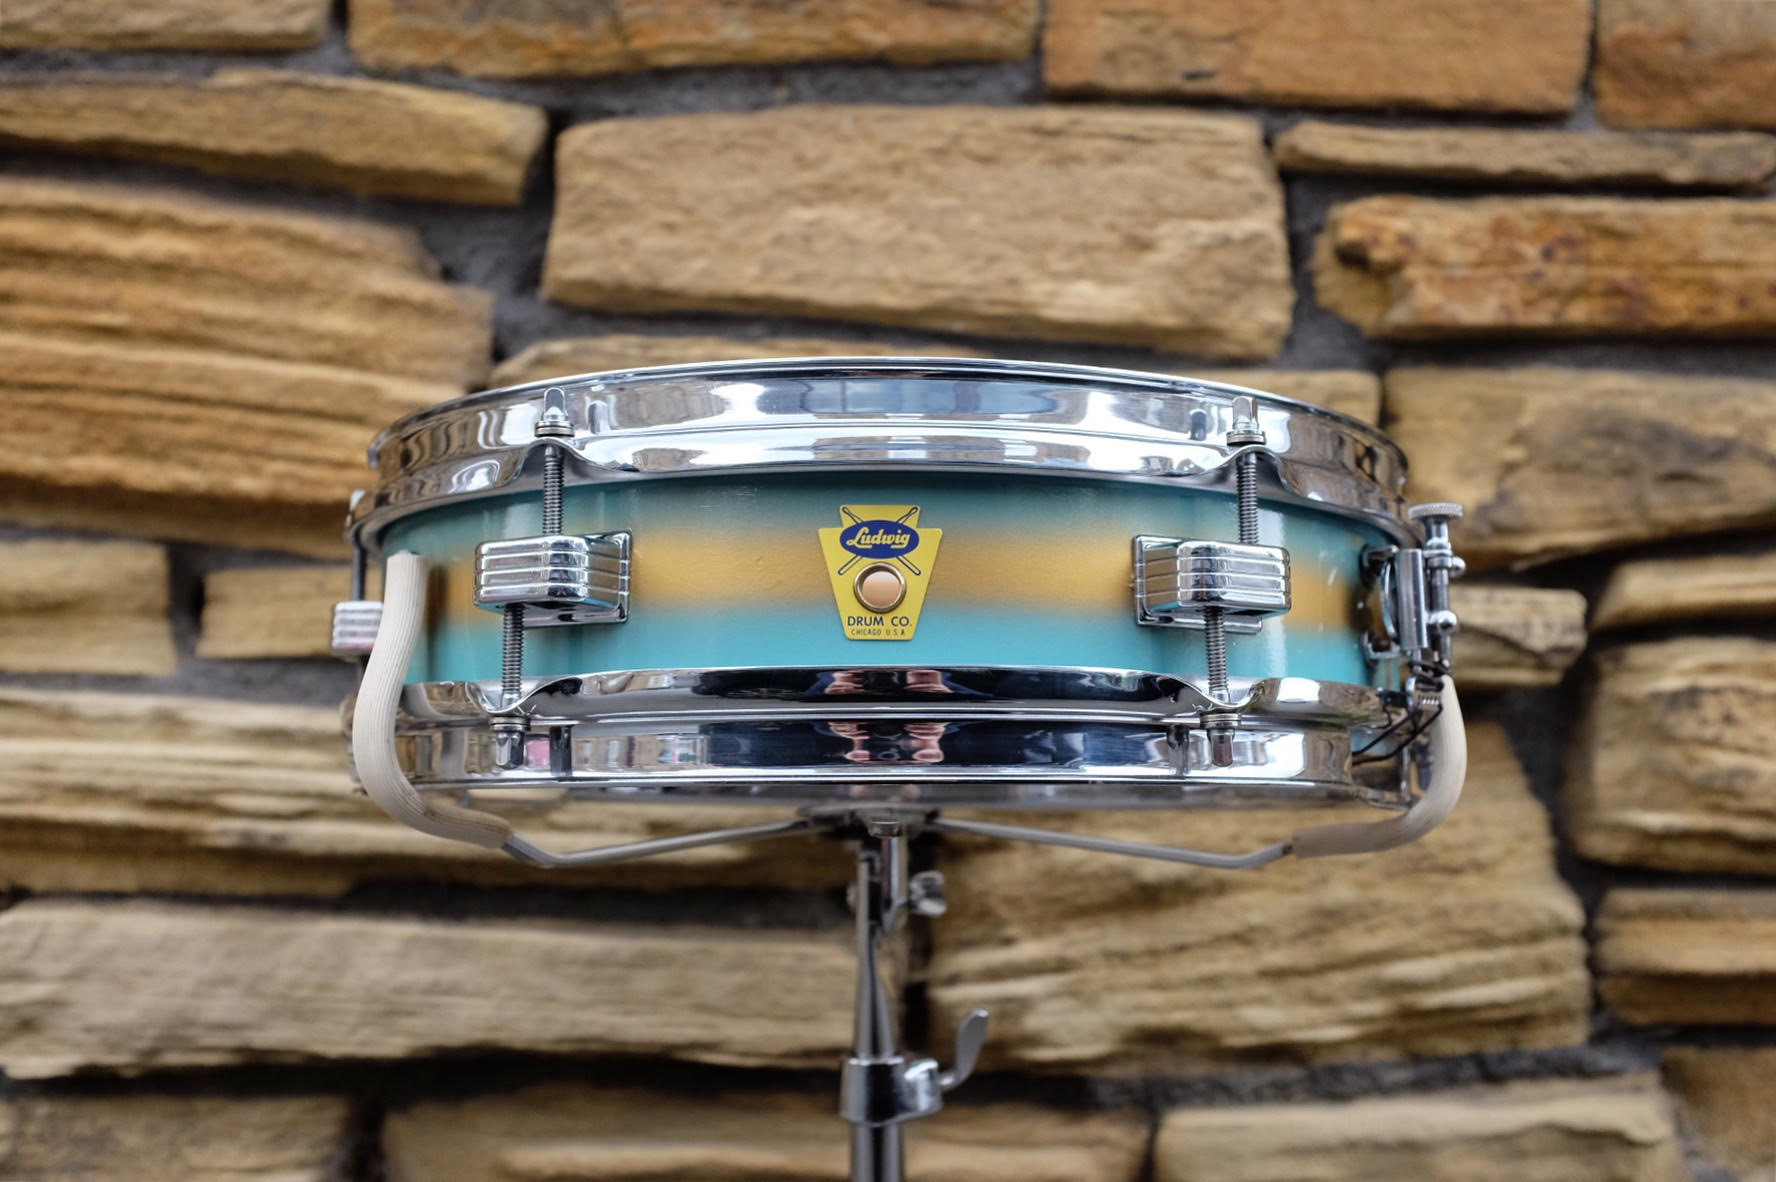 """Mar 16 1959 Ludwig 'Jazz Combo' 13x3"""" in Turquoise and Gold Duco. Restored and sold in October 2017."""